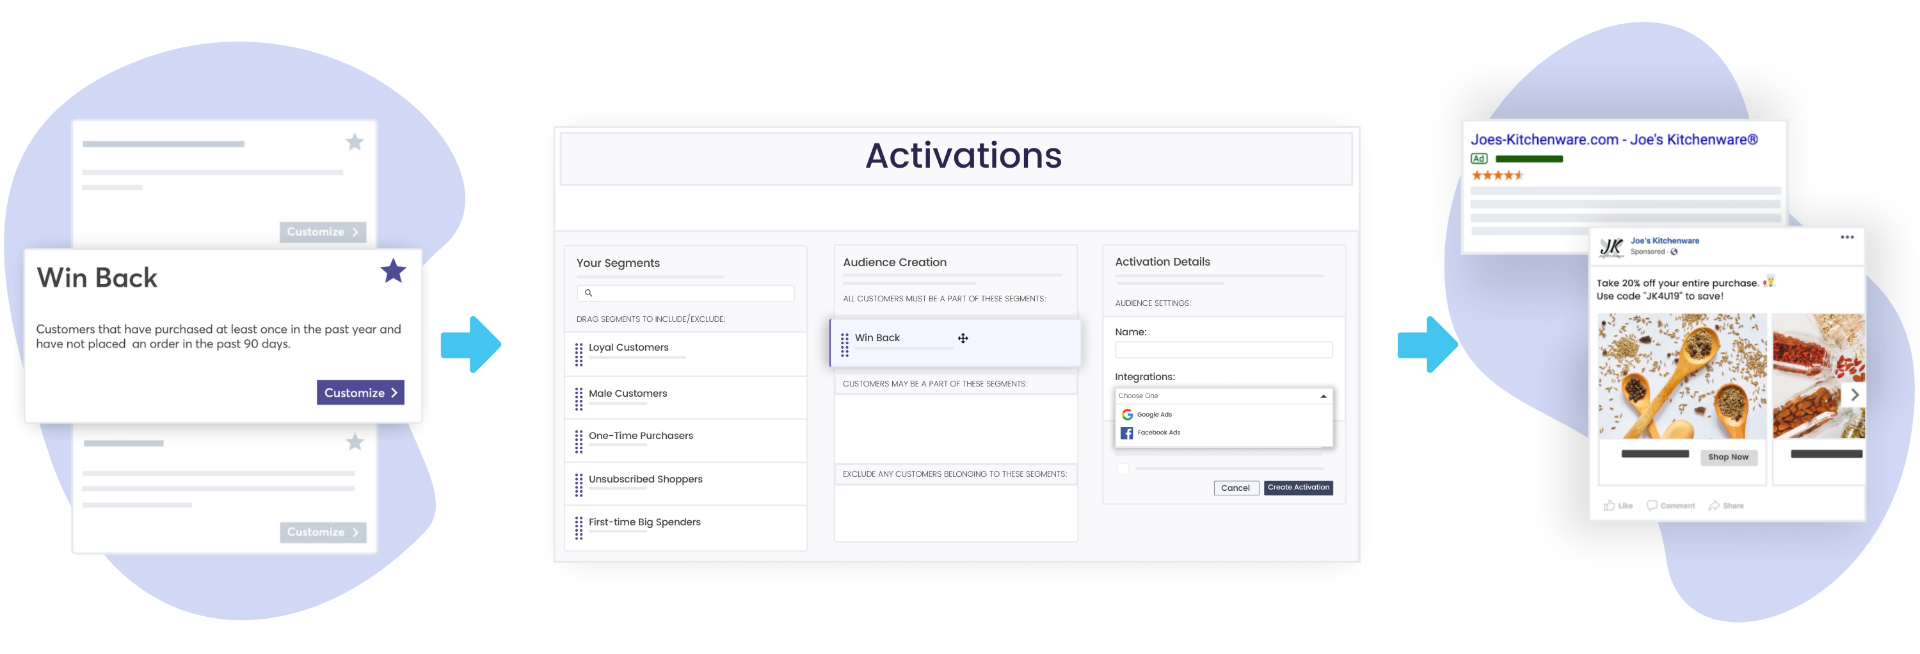 quickly build and activate custom audiences for real-time targeting